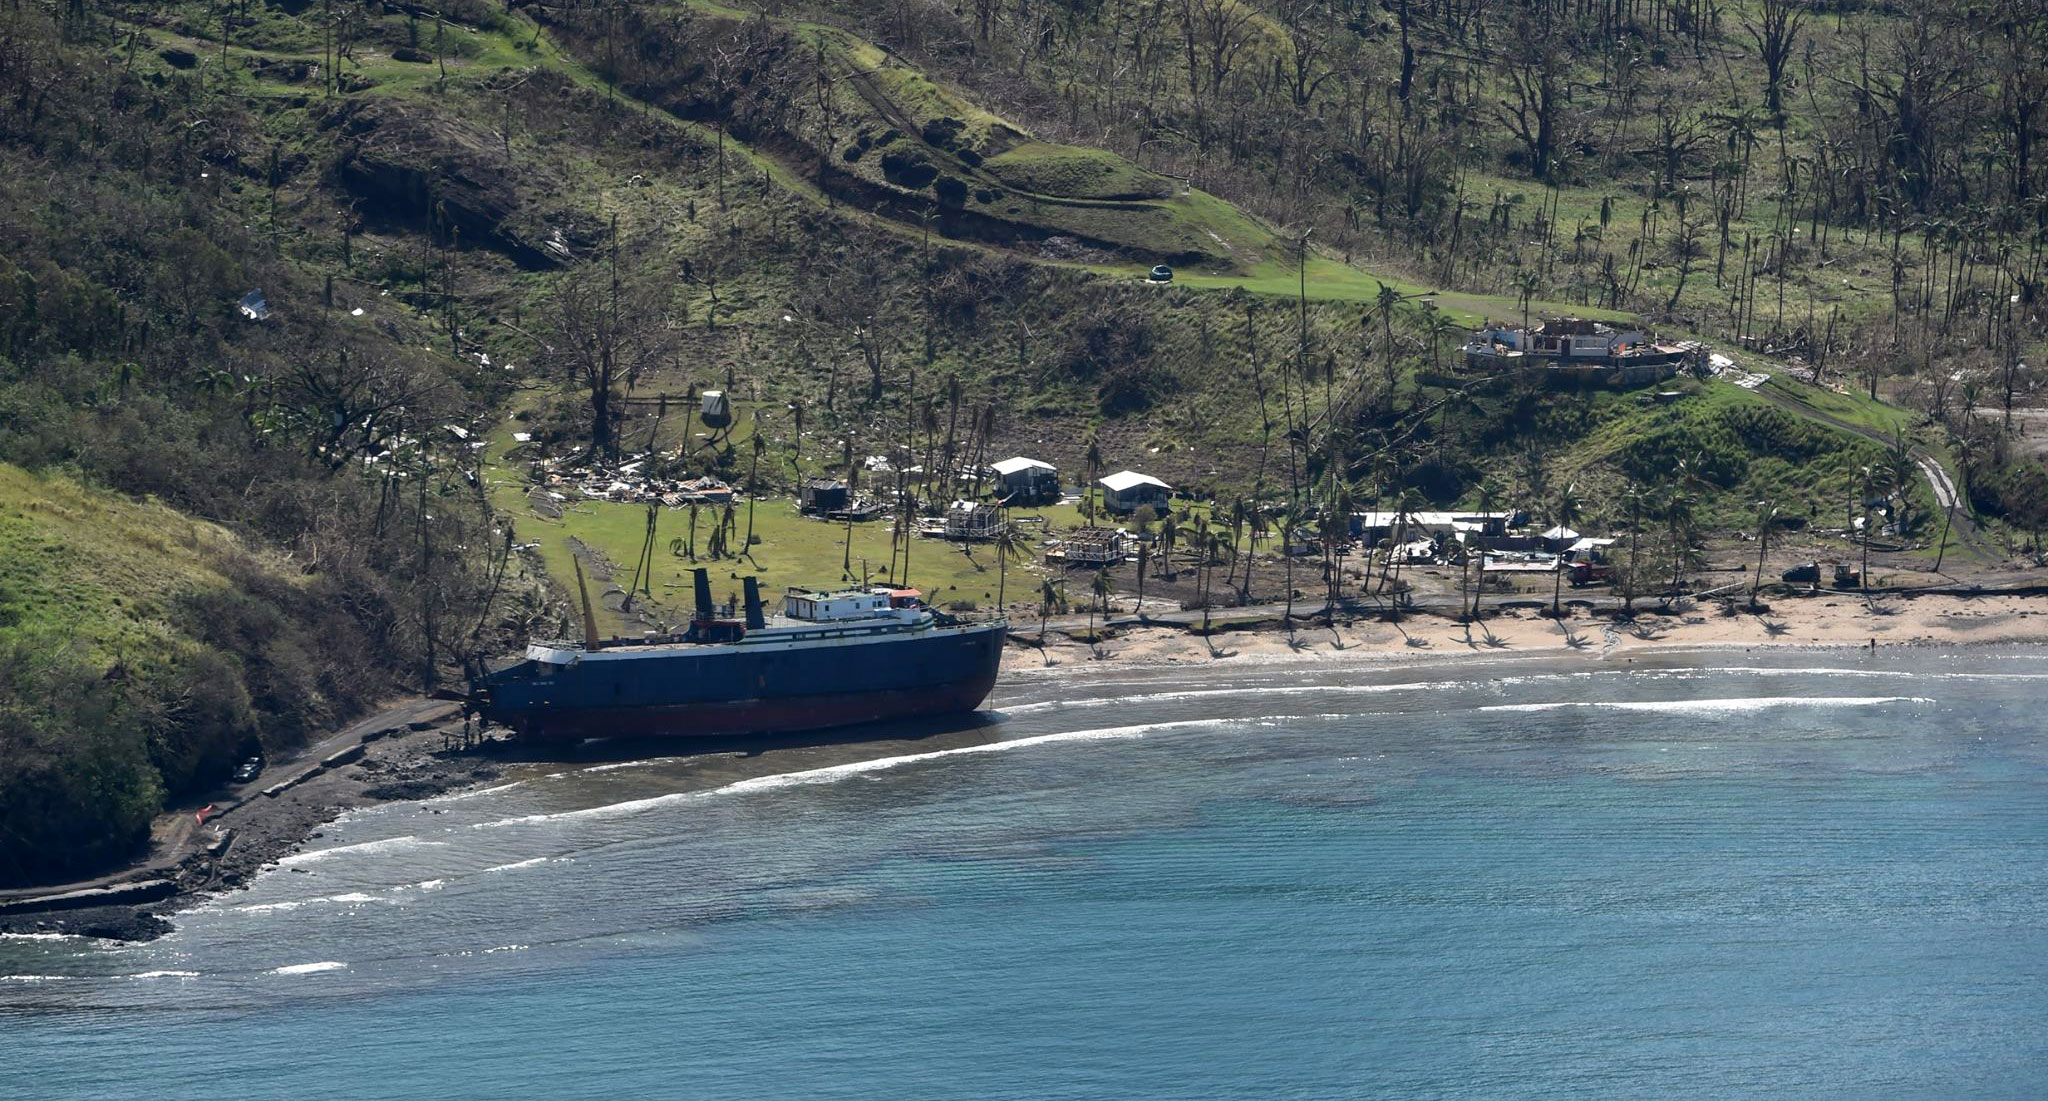 "In the wake of Tropical Cyclone Winston, a large boat, possible identified as the ""Sinu Wasa II"" rests on the beach in front of washed out roads and gutted buildings in the city of Toki, Fiji. Image by NZ Defense Airforce"